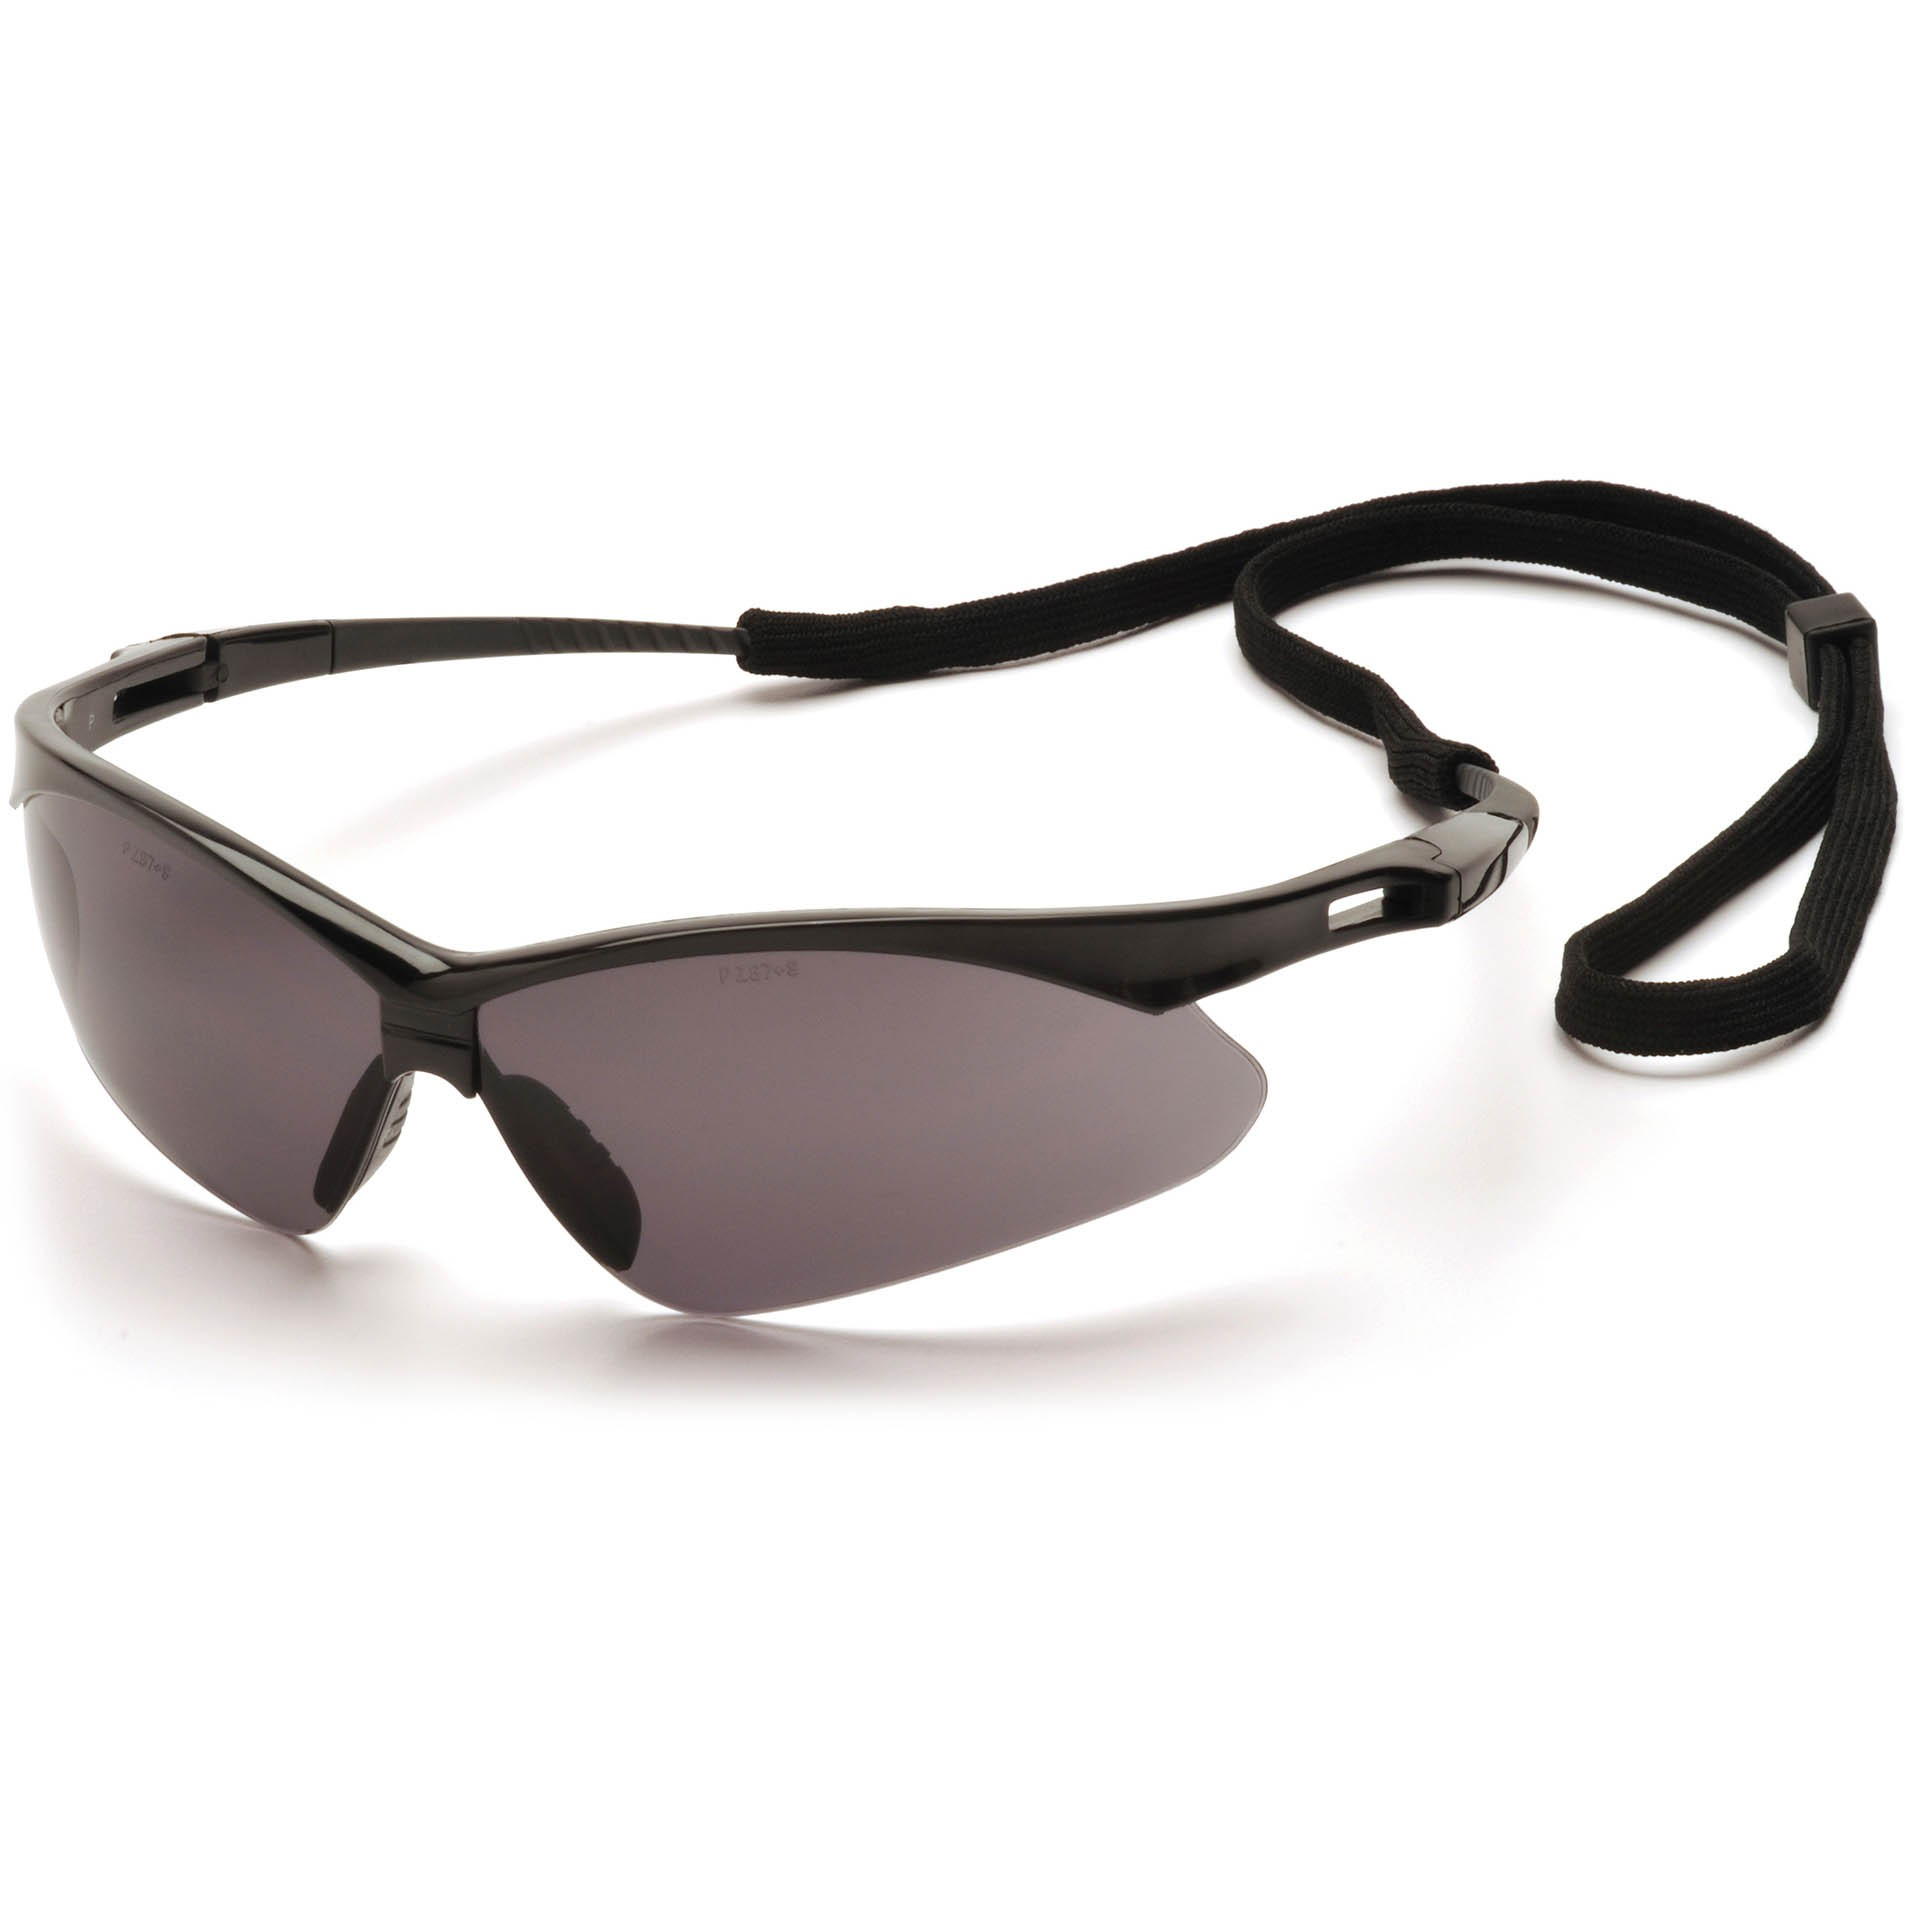 Safety Glasses Black Frame : Pyramex PMXTREME Safety Glasses - Black Frame - Gray Lens ...